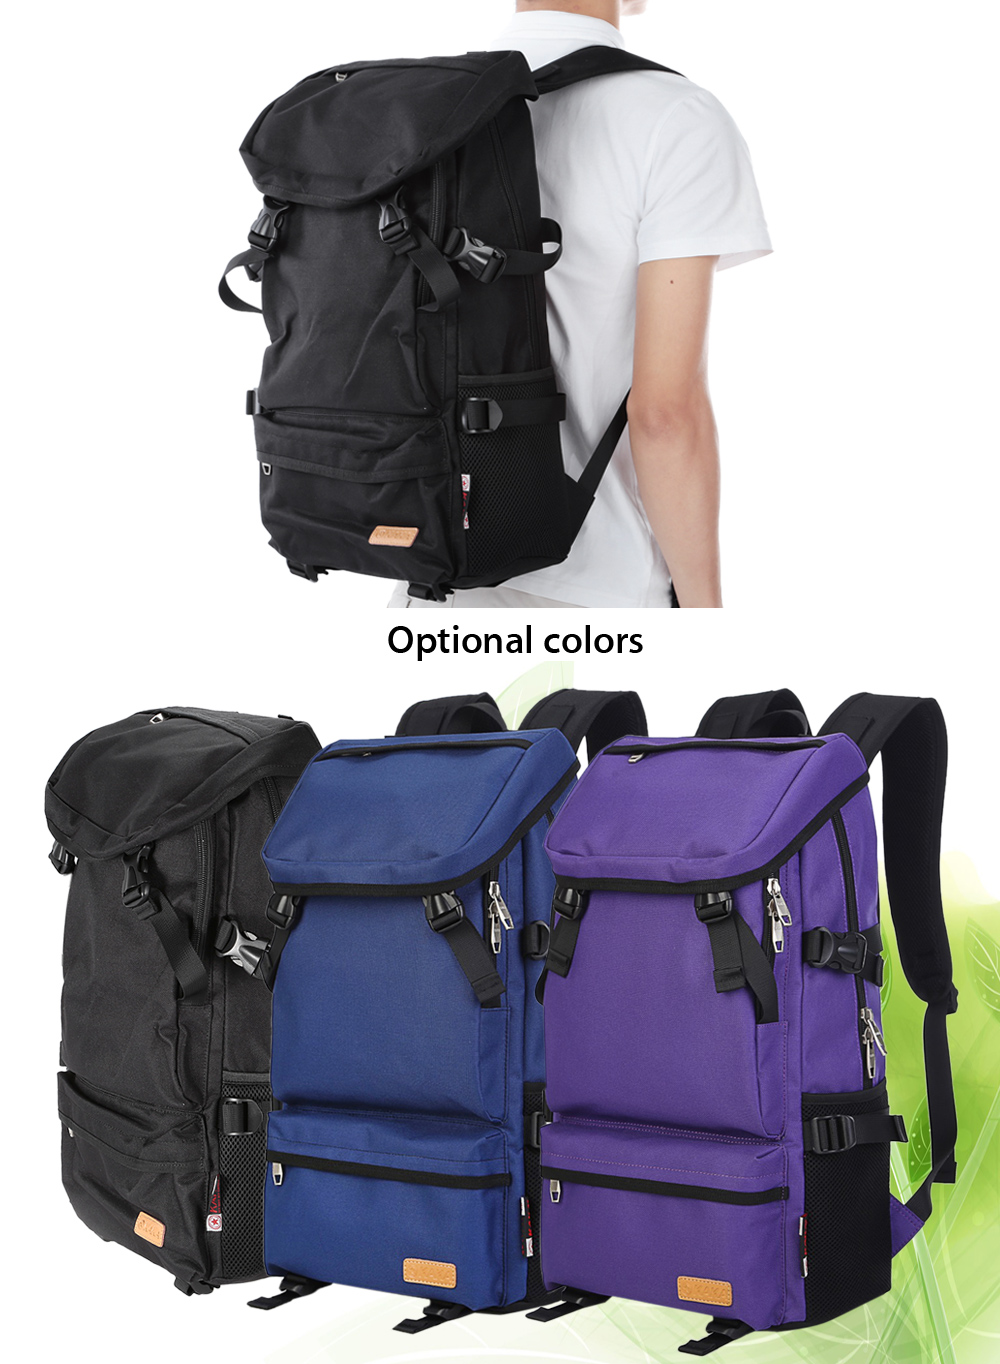 Kaka 88005 Oxford 35L Leisure Backpack 16 inch Laptop Bag with Nylon Lining